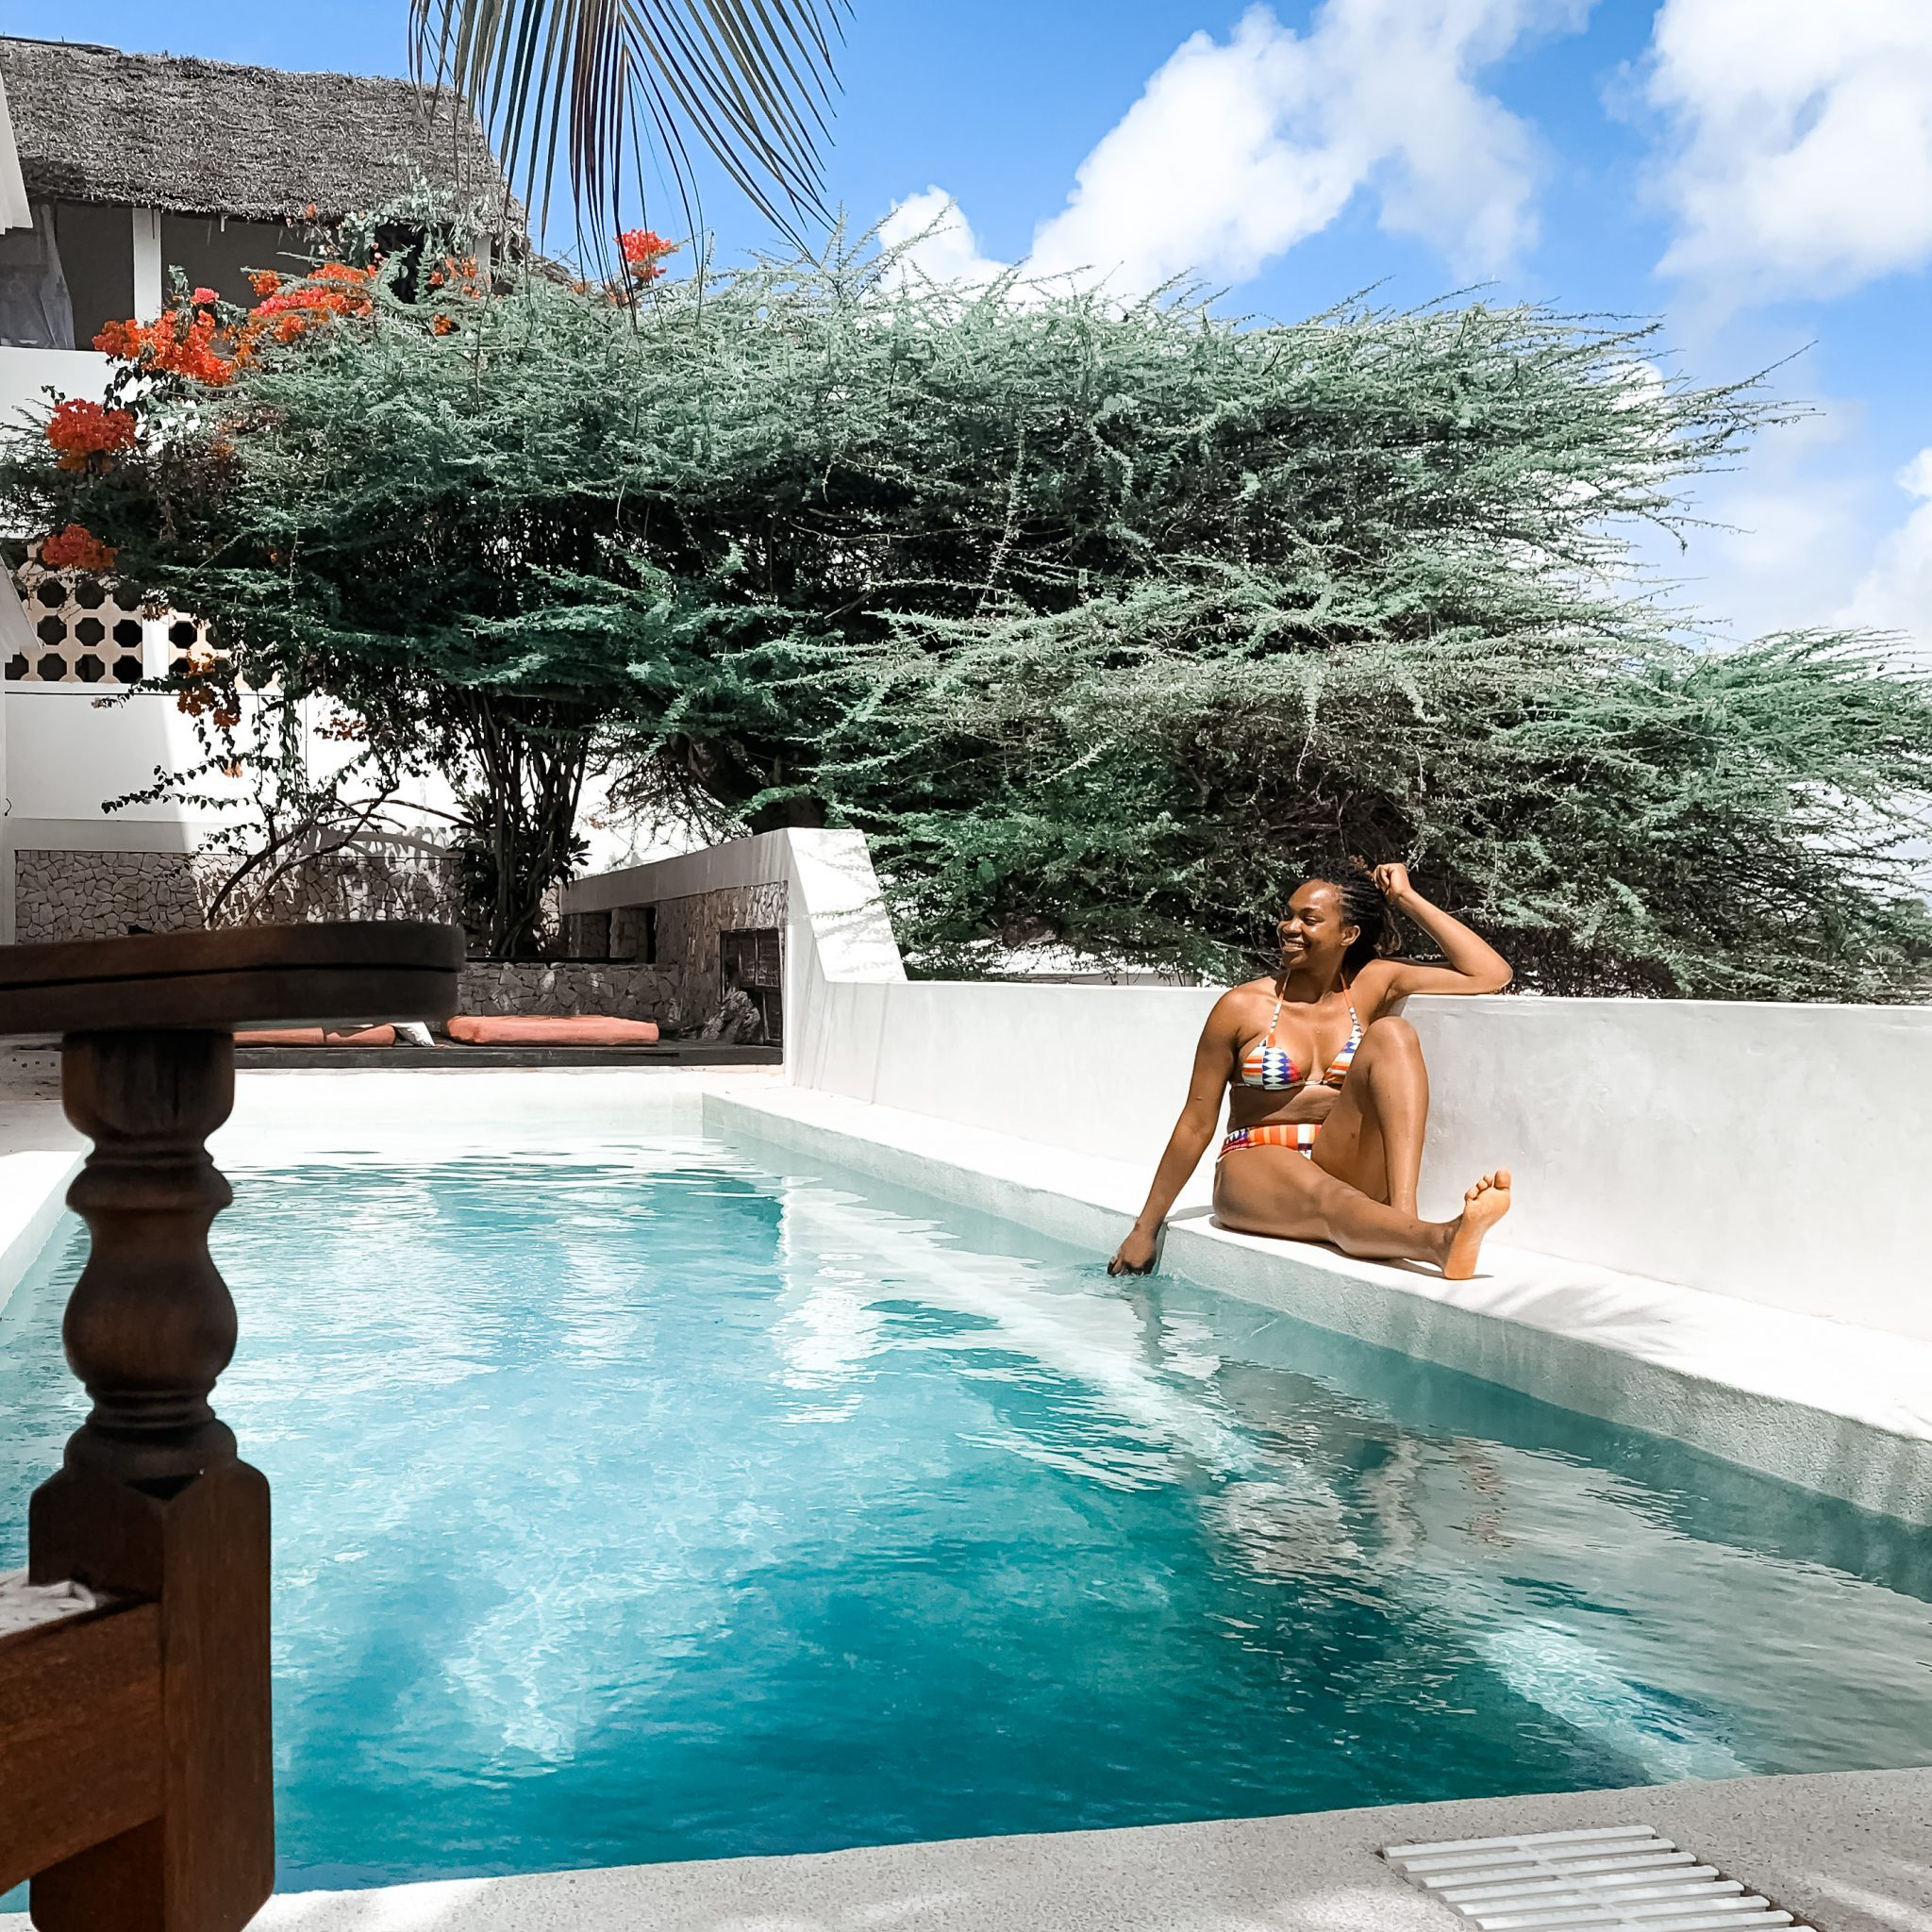 IJeoma. kola.posing poolside in a bikini - 2021 Travel Destinations Buck List Blog